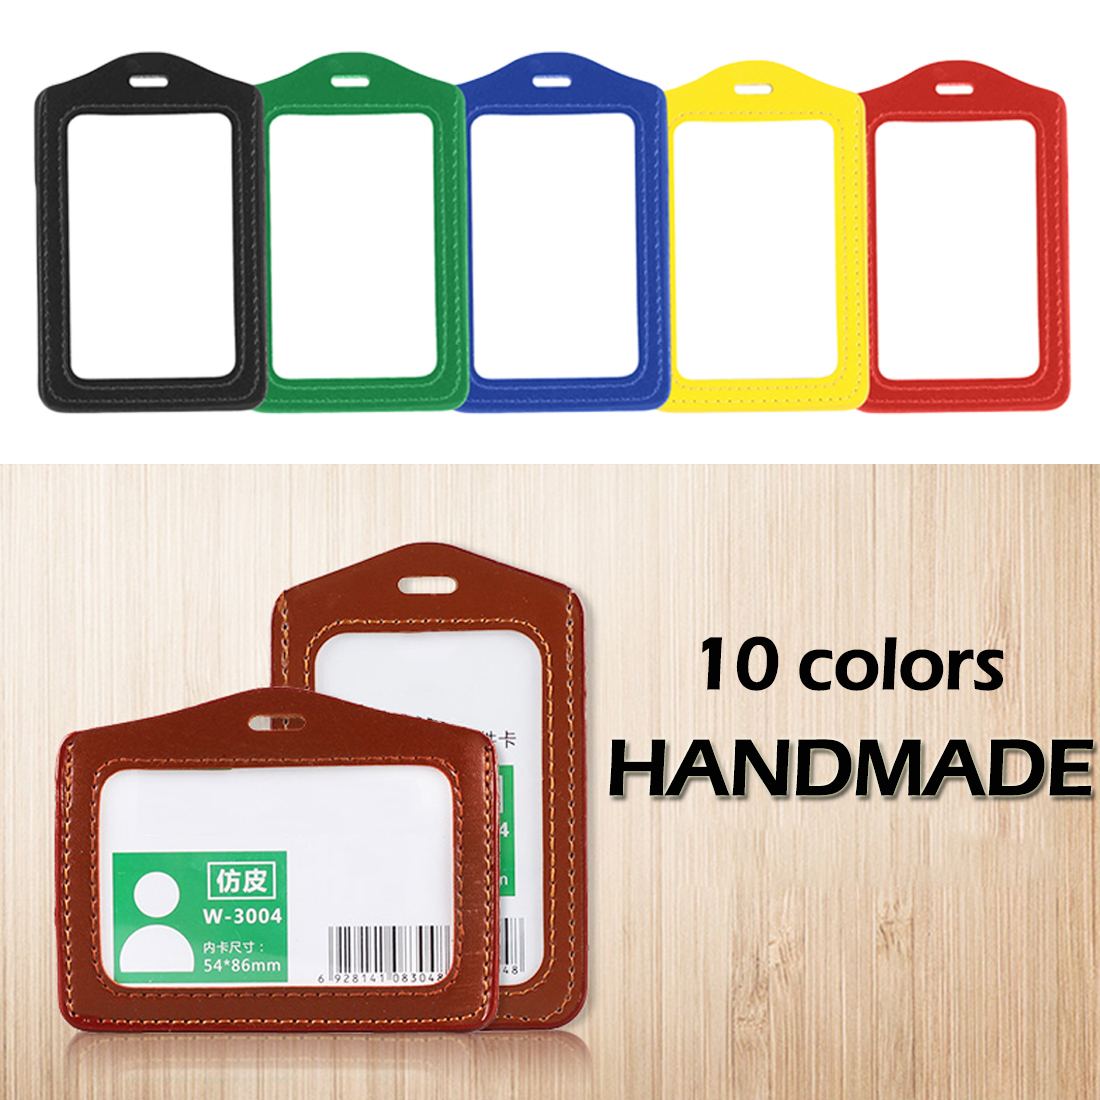 PU Leather ID Badge Case Credit Card Holders Clear And Color Border Lanyard Holes Bank Credit Card Holders ID Badge Holders